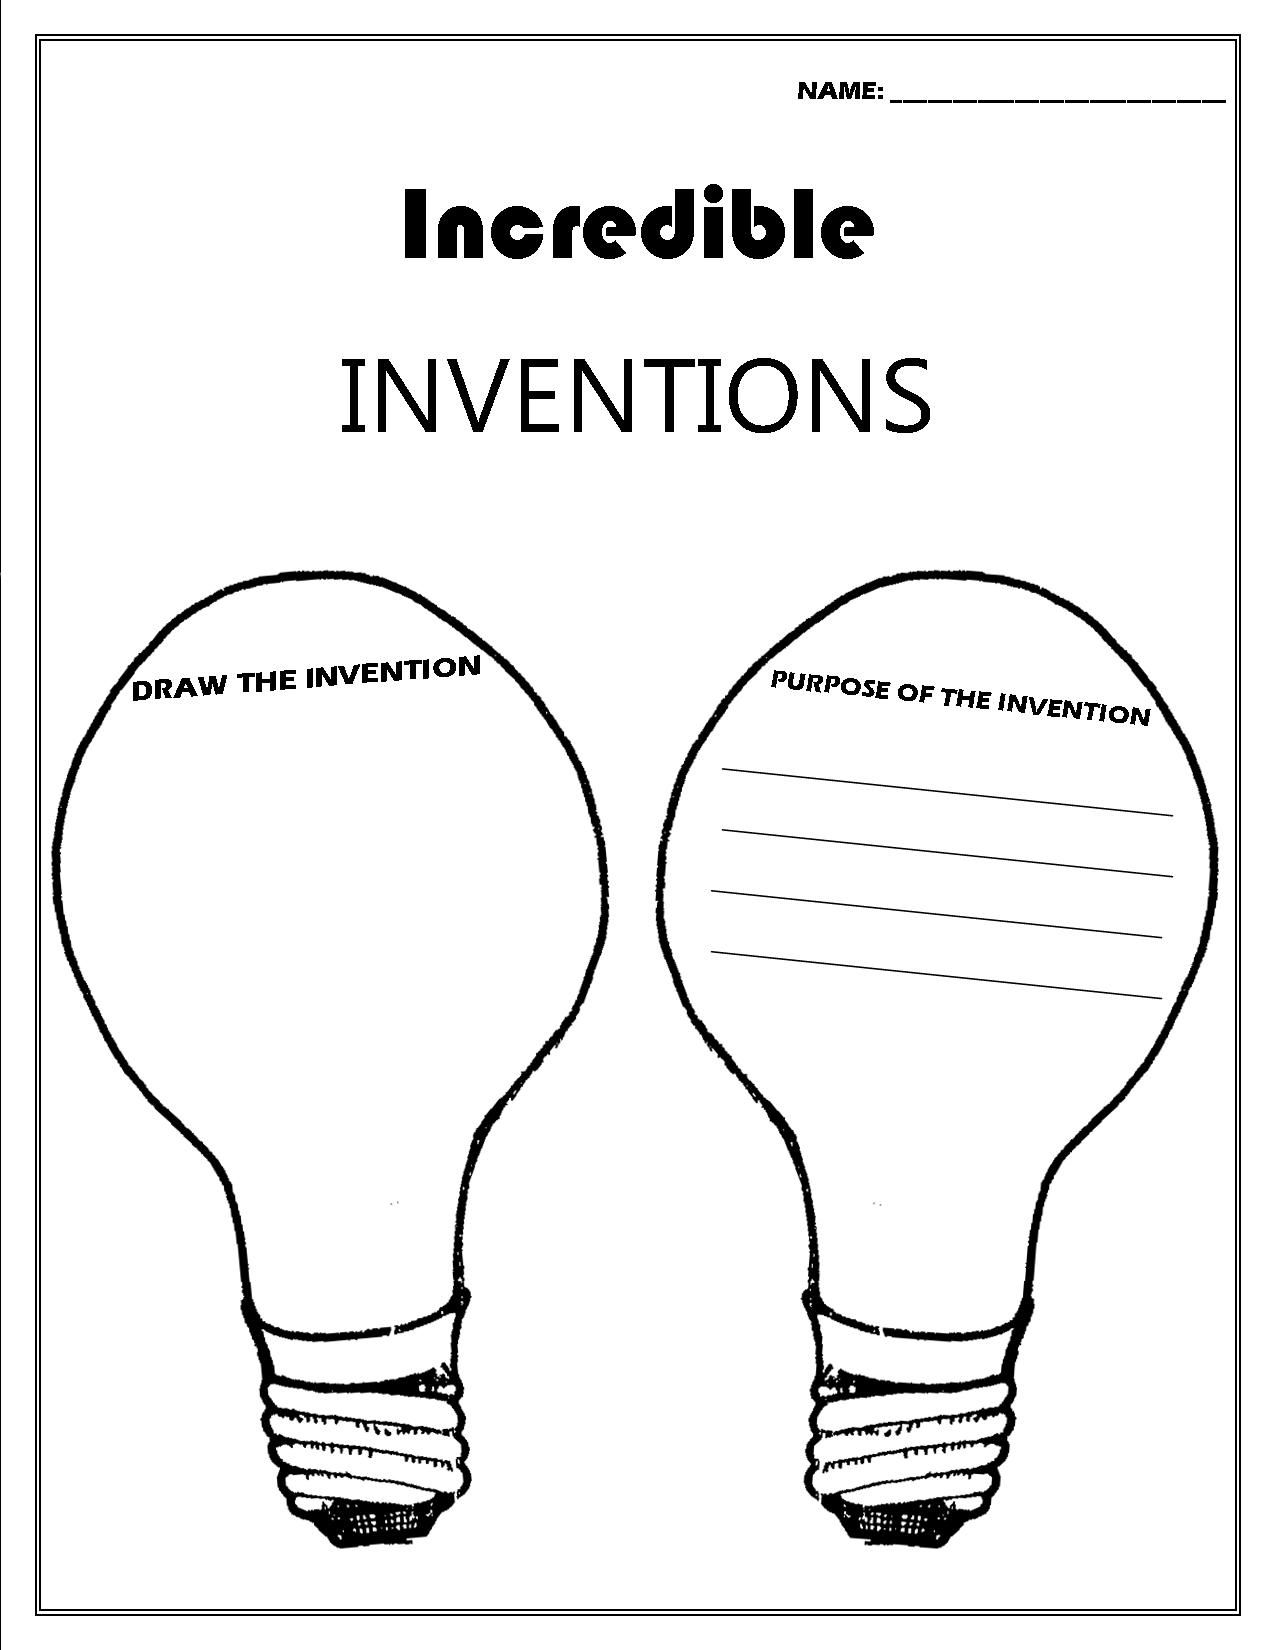 Inventor Convention Worksheet Printable Worksheets Worksheets Inquiry Learning [ 1650 x 1275 Pixel ]